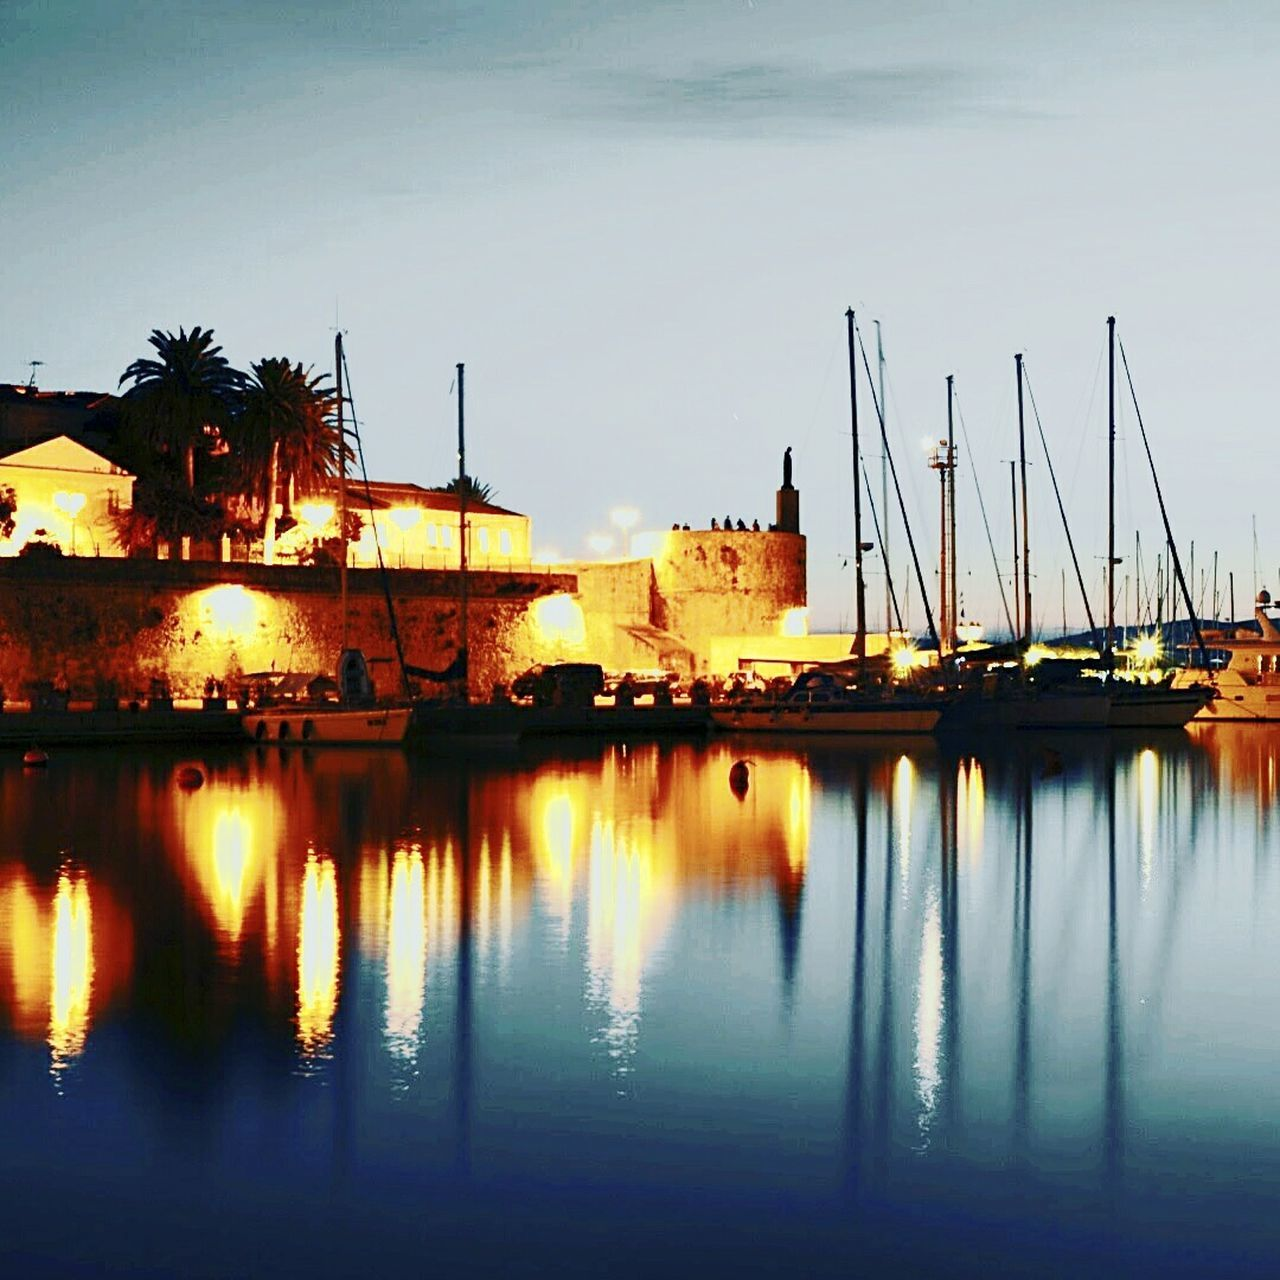 Reflection Water Sunset Travel Nautical Vessel Transportation No People Travel Destinations Sky Outdoors Harbor Sardinia Sardegna Italy  Alghero Italian Riviera Port Seaside Seaside Resort Boat Harbour View Castle Dawn